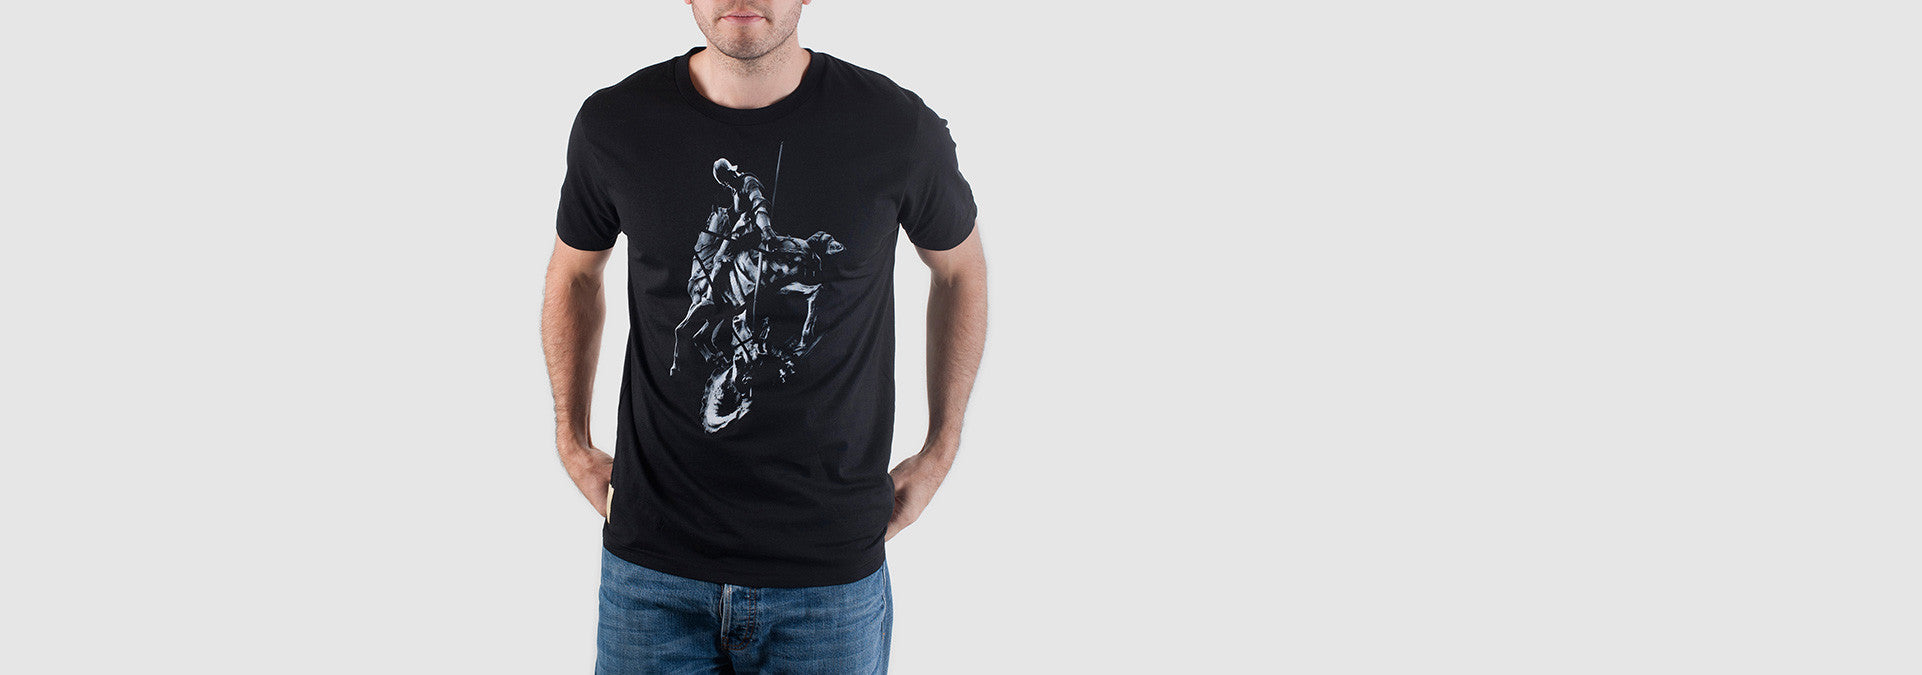 Statuesque T-Shirt Black